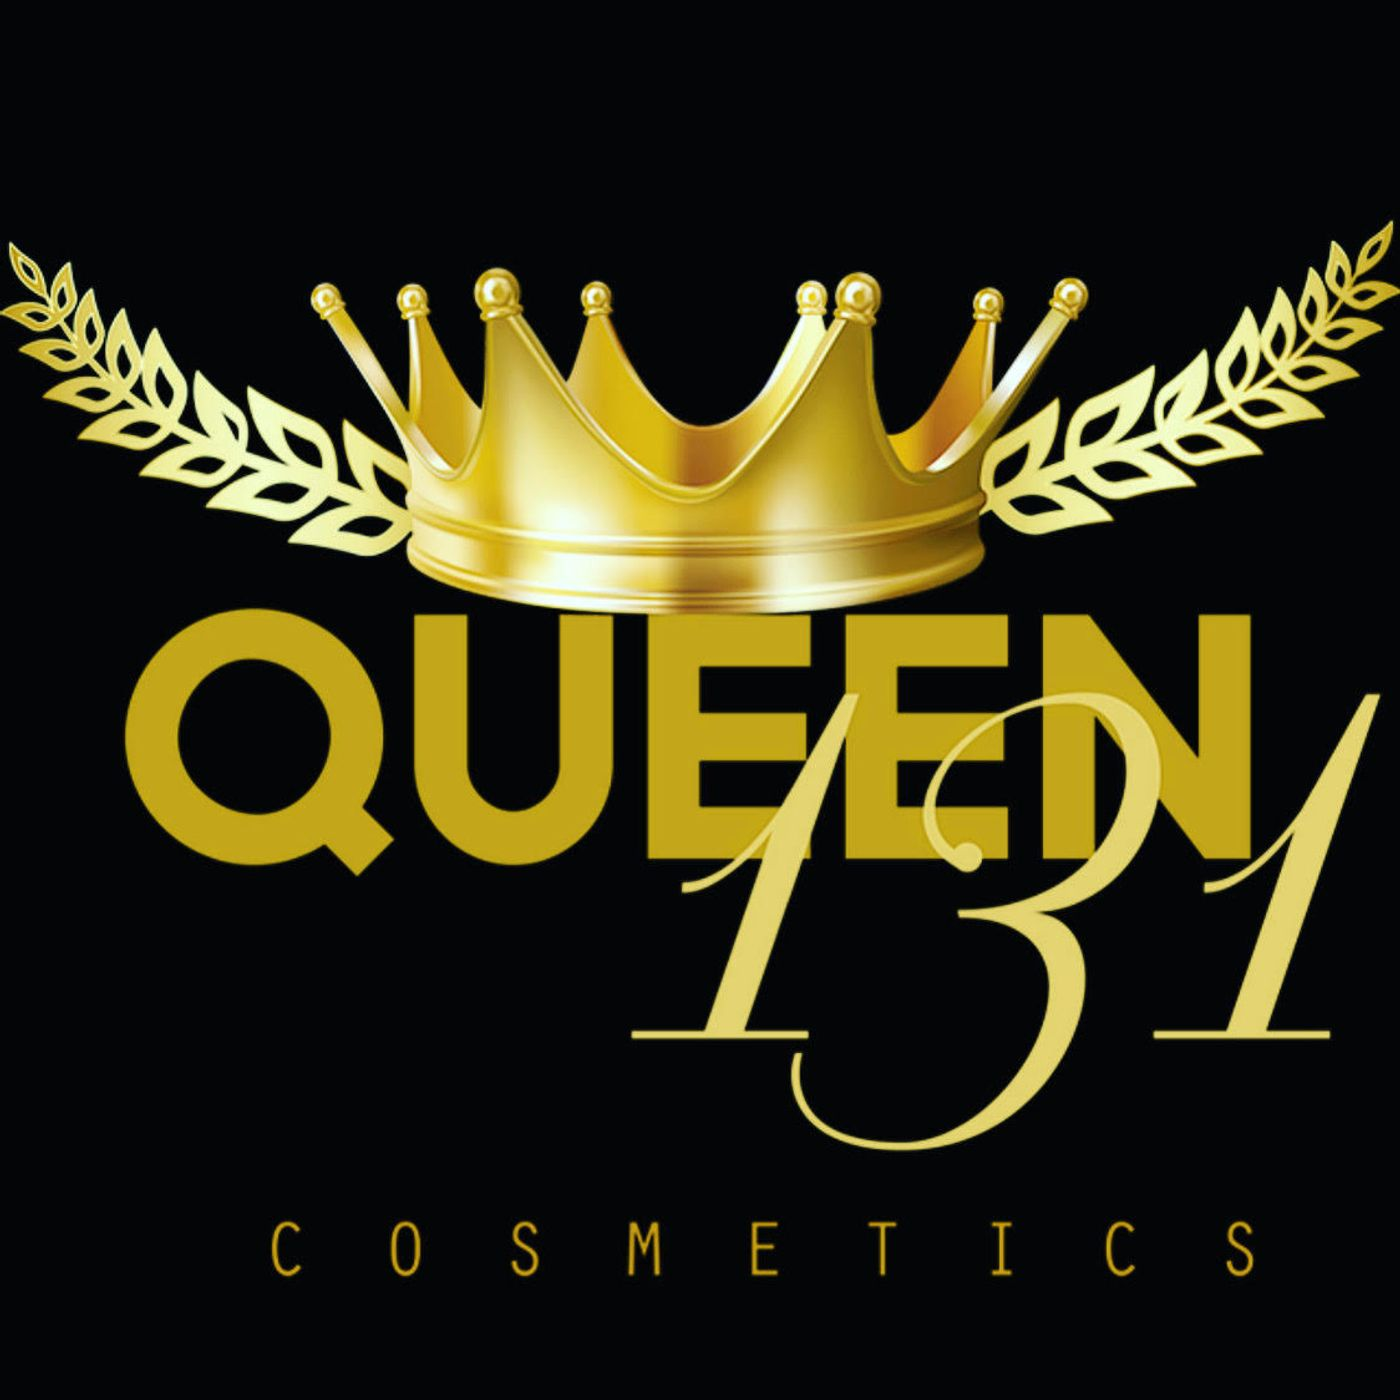 LIVE WITH QUEEN 131 COSMETICS